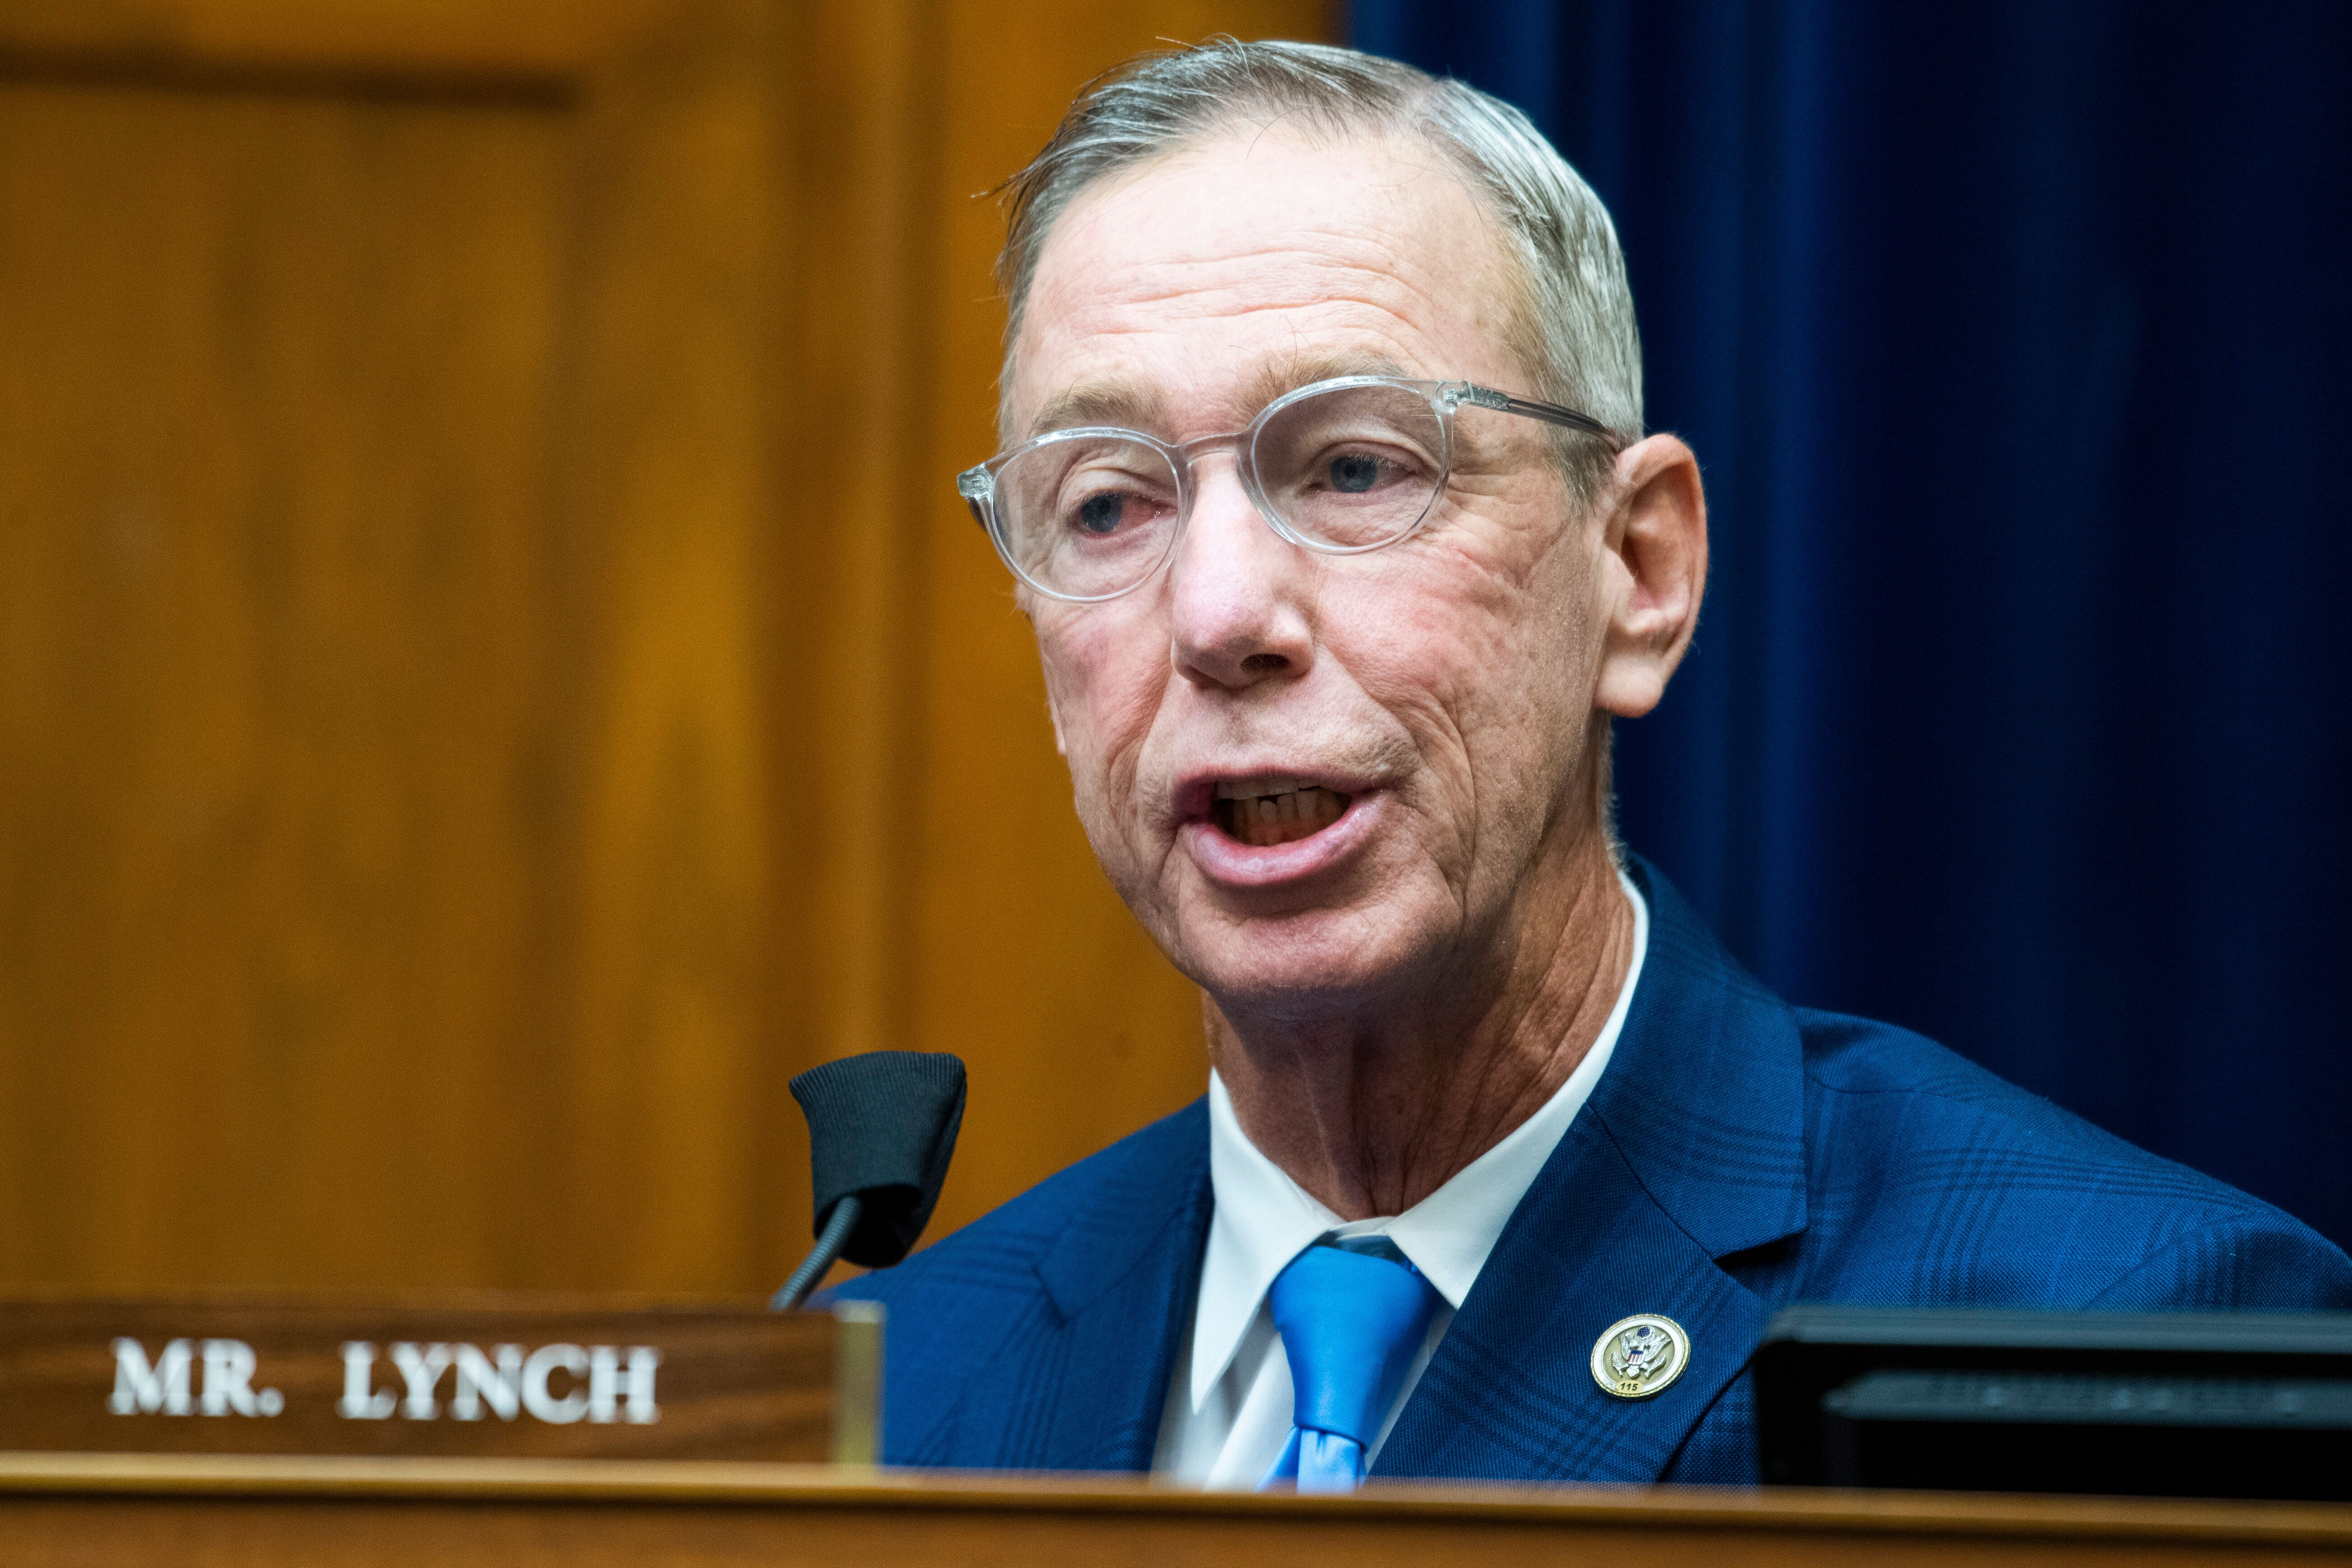 Rep. Stephen Lynch, a centrist with a low national profile, is not taking his primary challenger seriously. Hopeful progressi